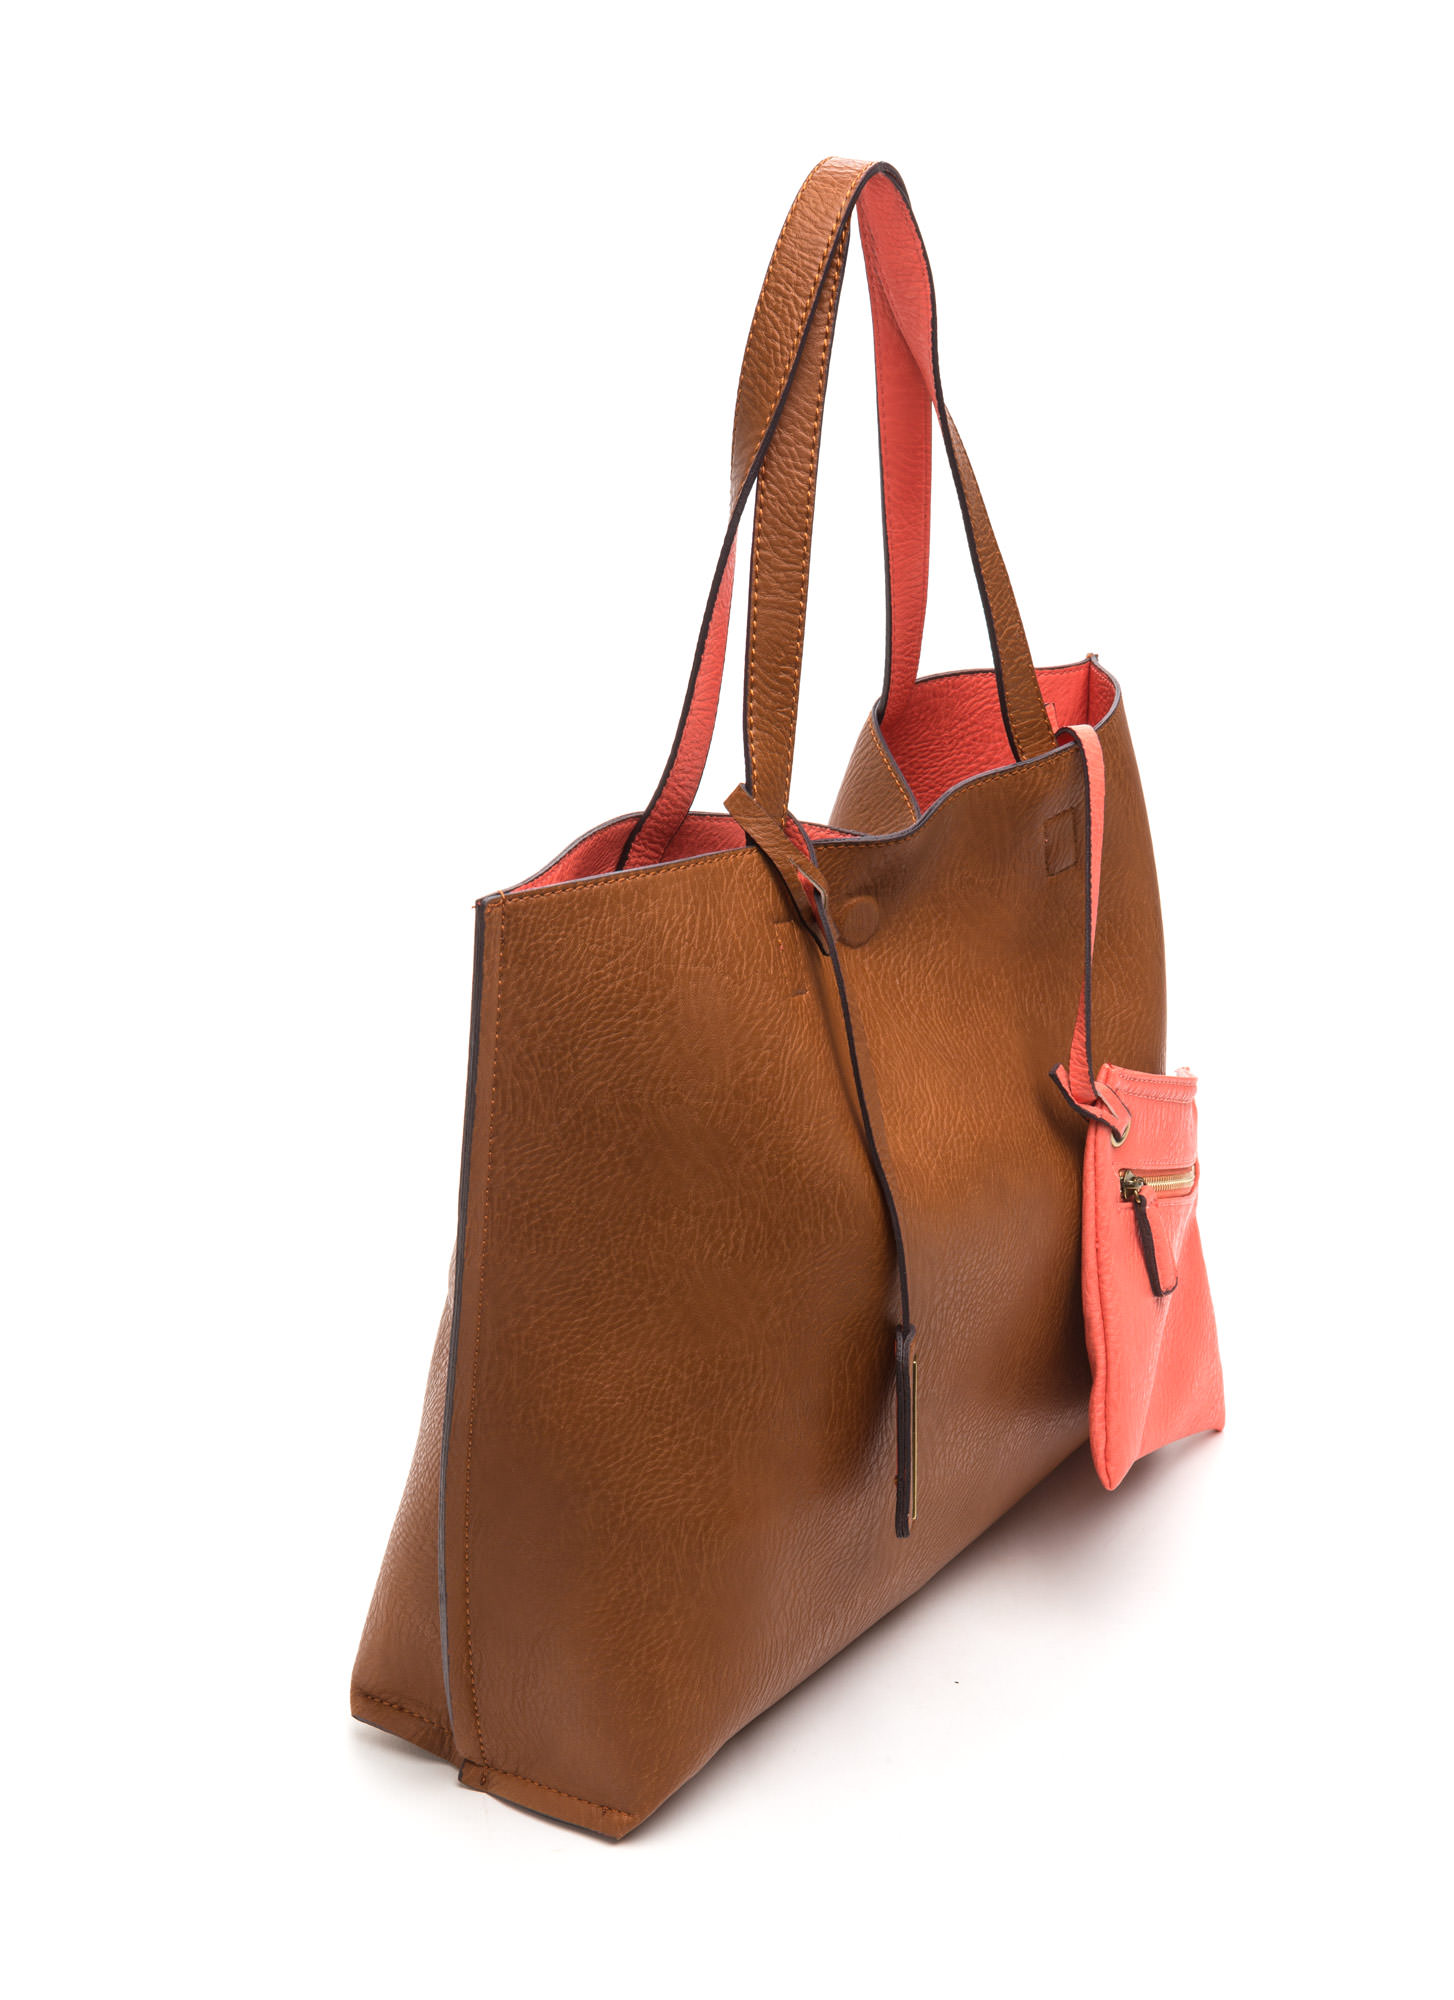 STREET LEVEL Office Chic Reversible Tote BROWNSALMON